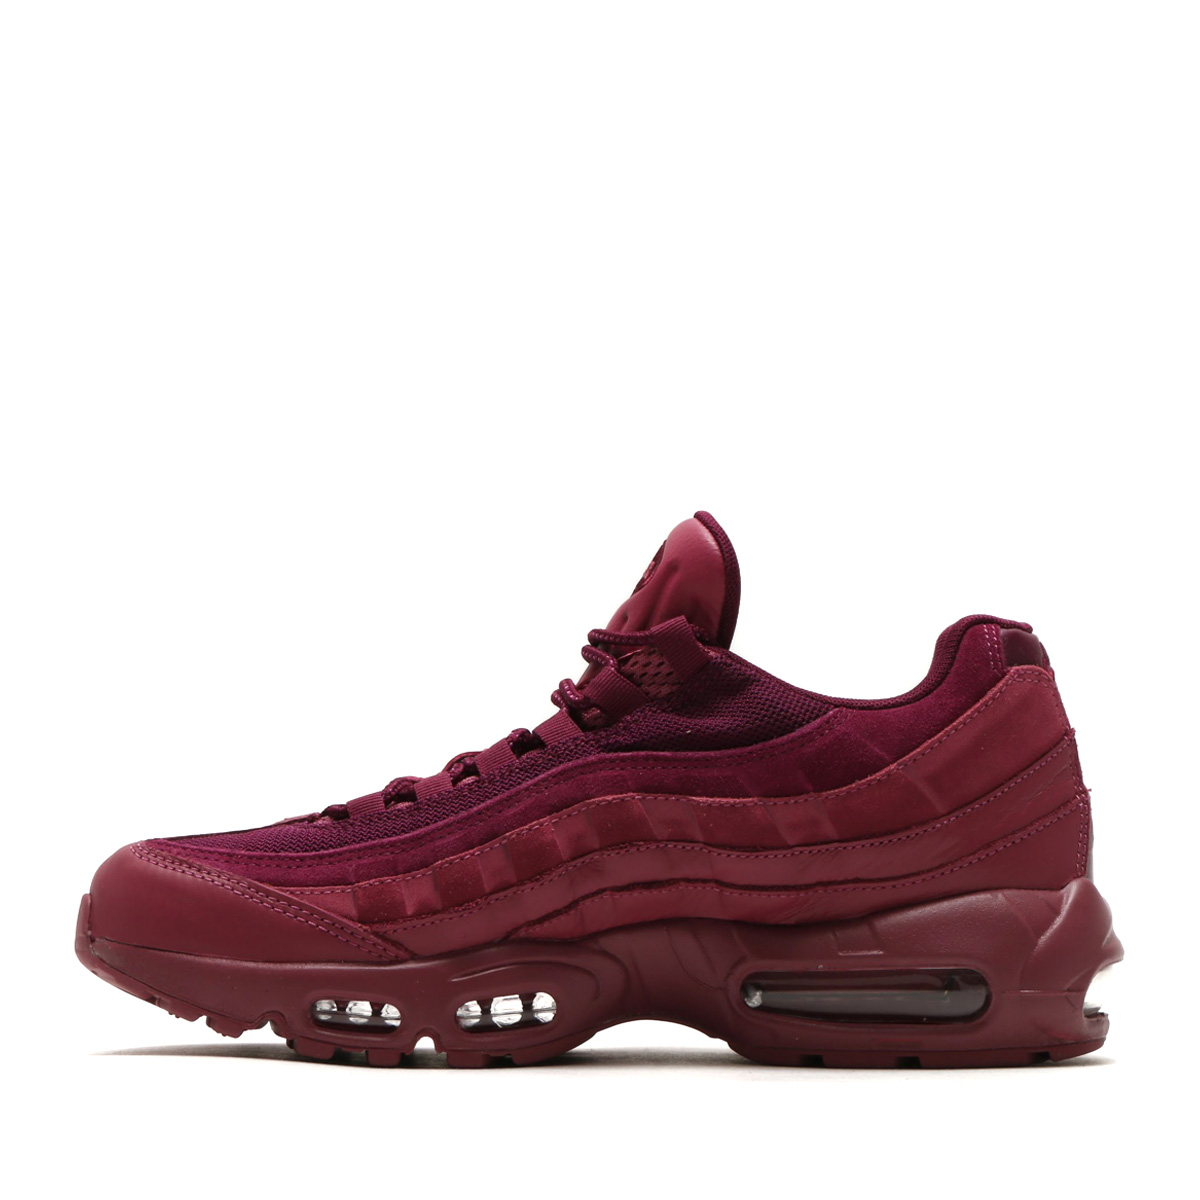 new product 4dcdc c24c8 air max 95 vintage wine